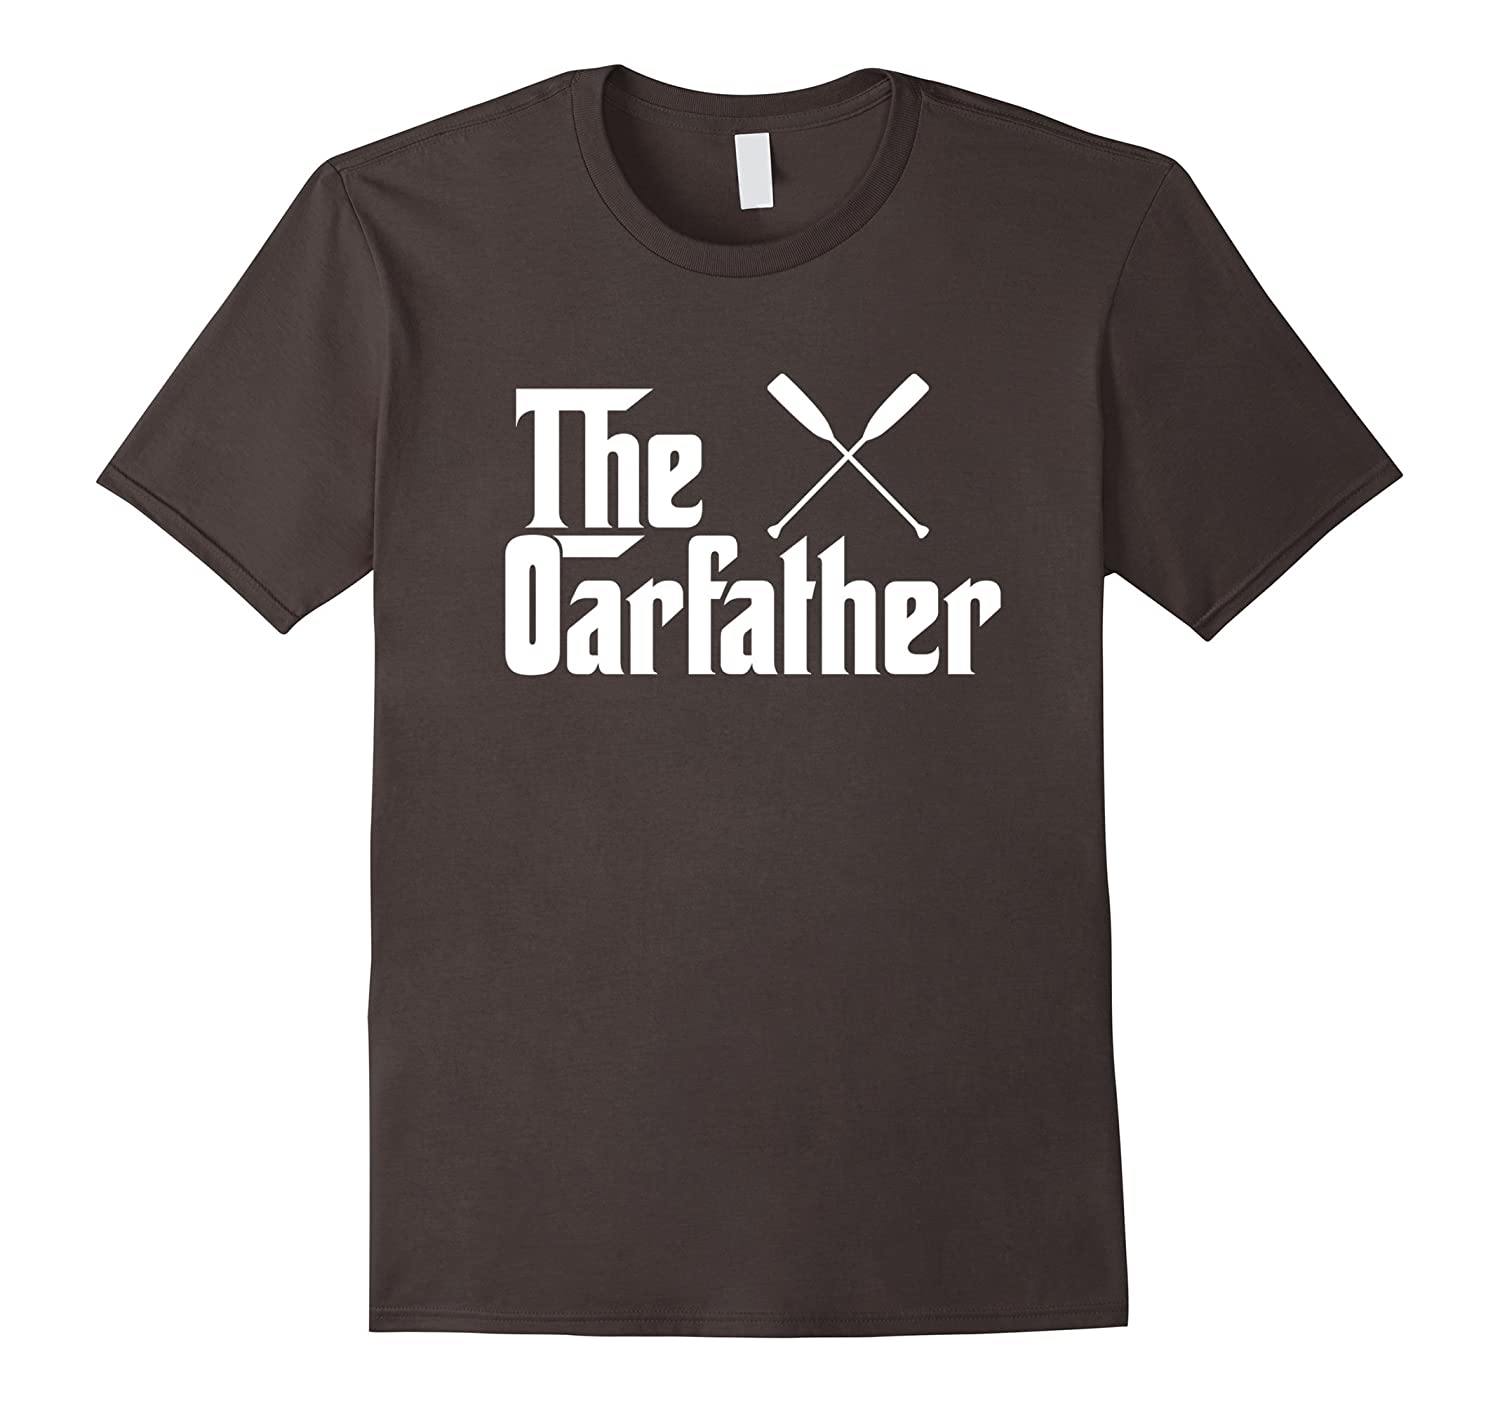 The Oar Father Funny Rowing Canoeing T Shirt Gift